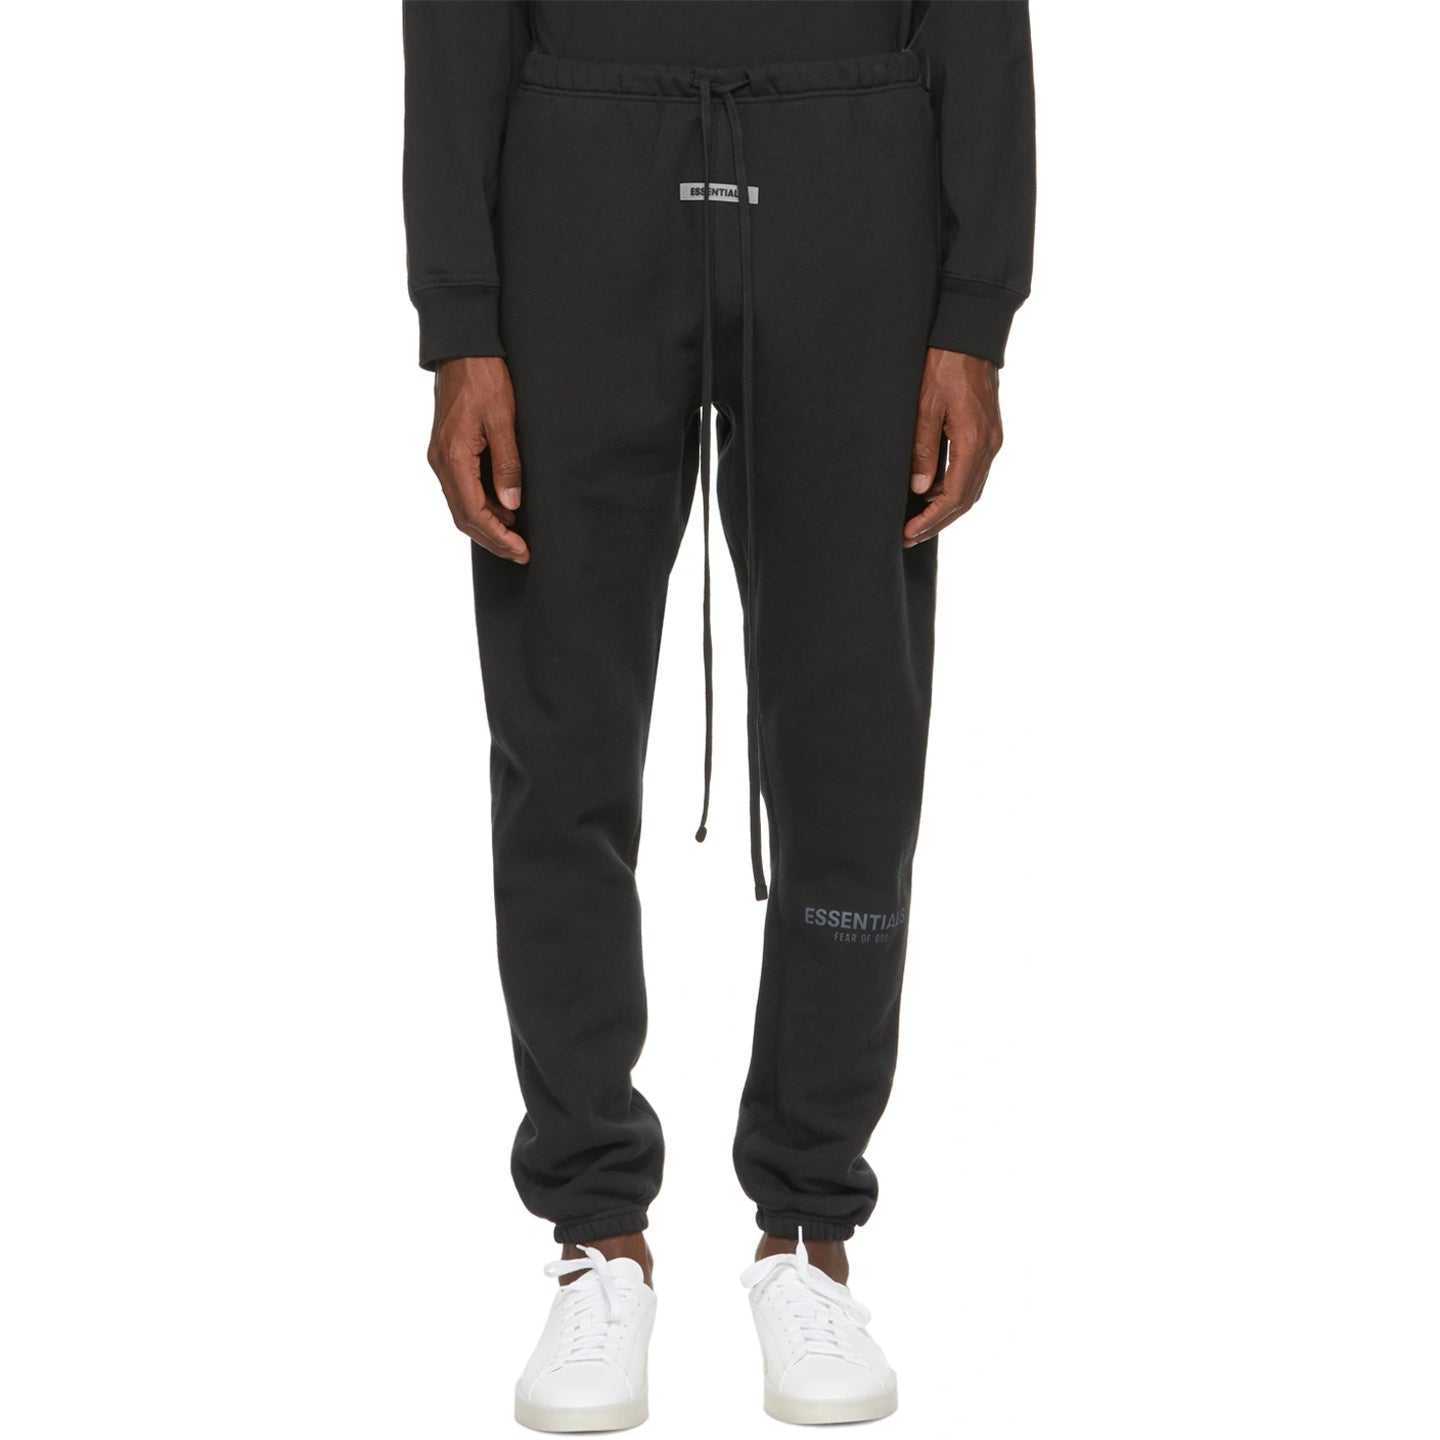 FEAR OF GOD ESSENTIALS SWEATPANT BLACK